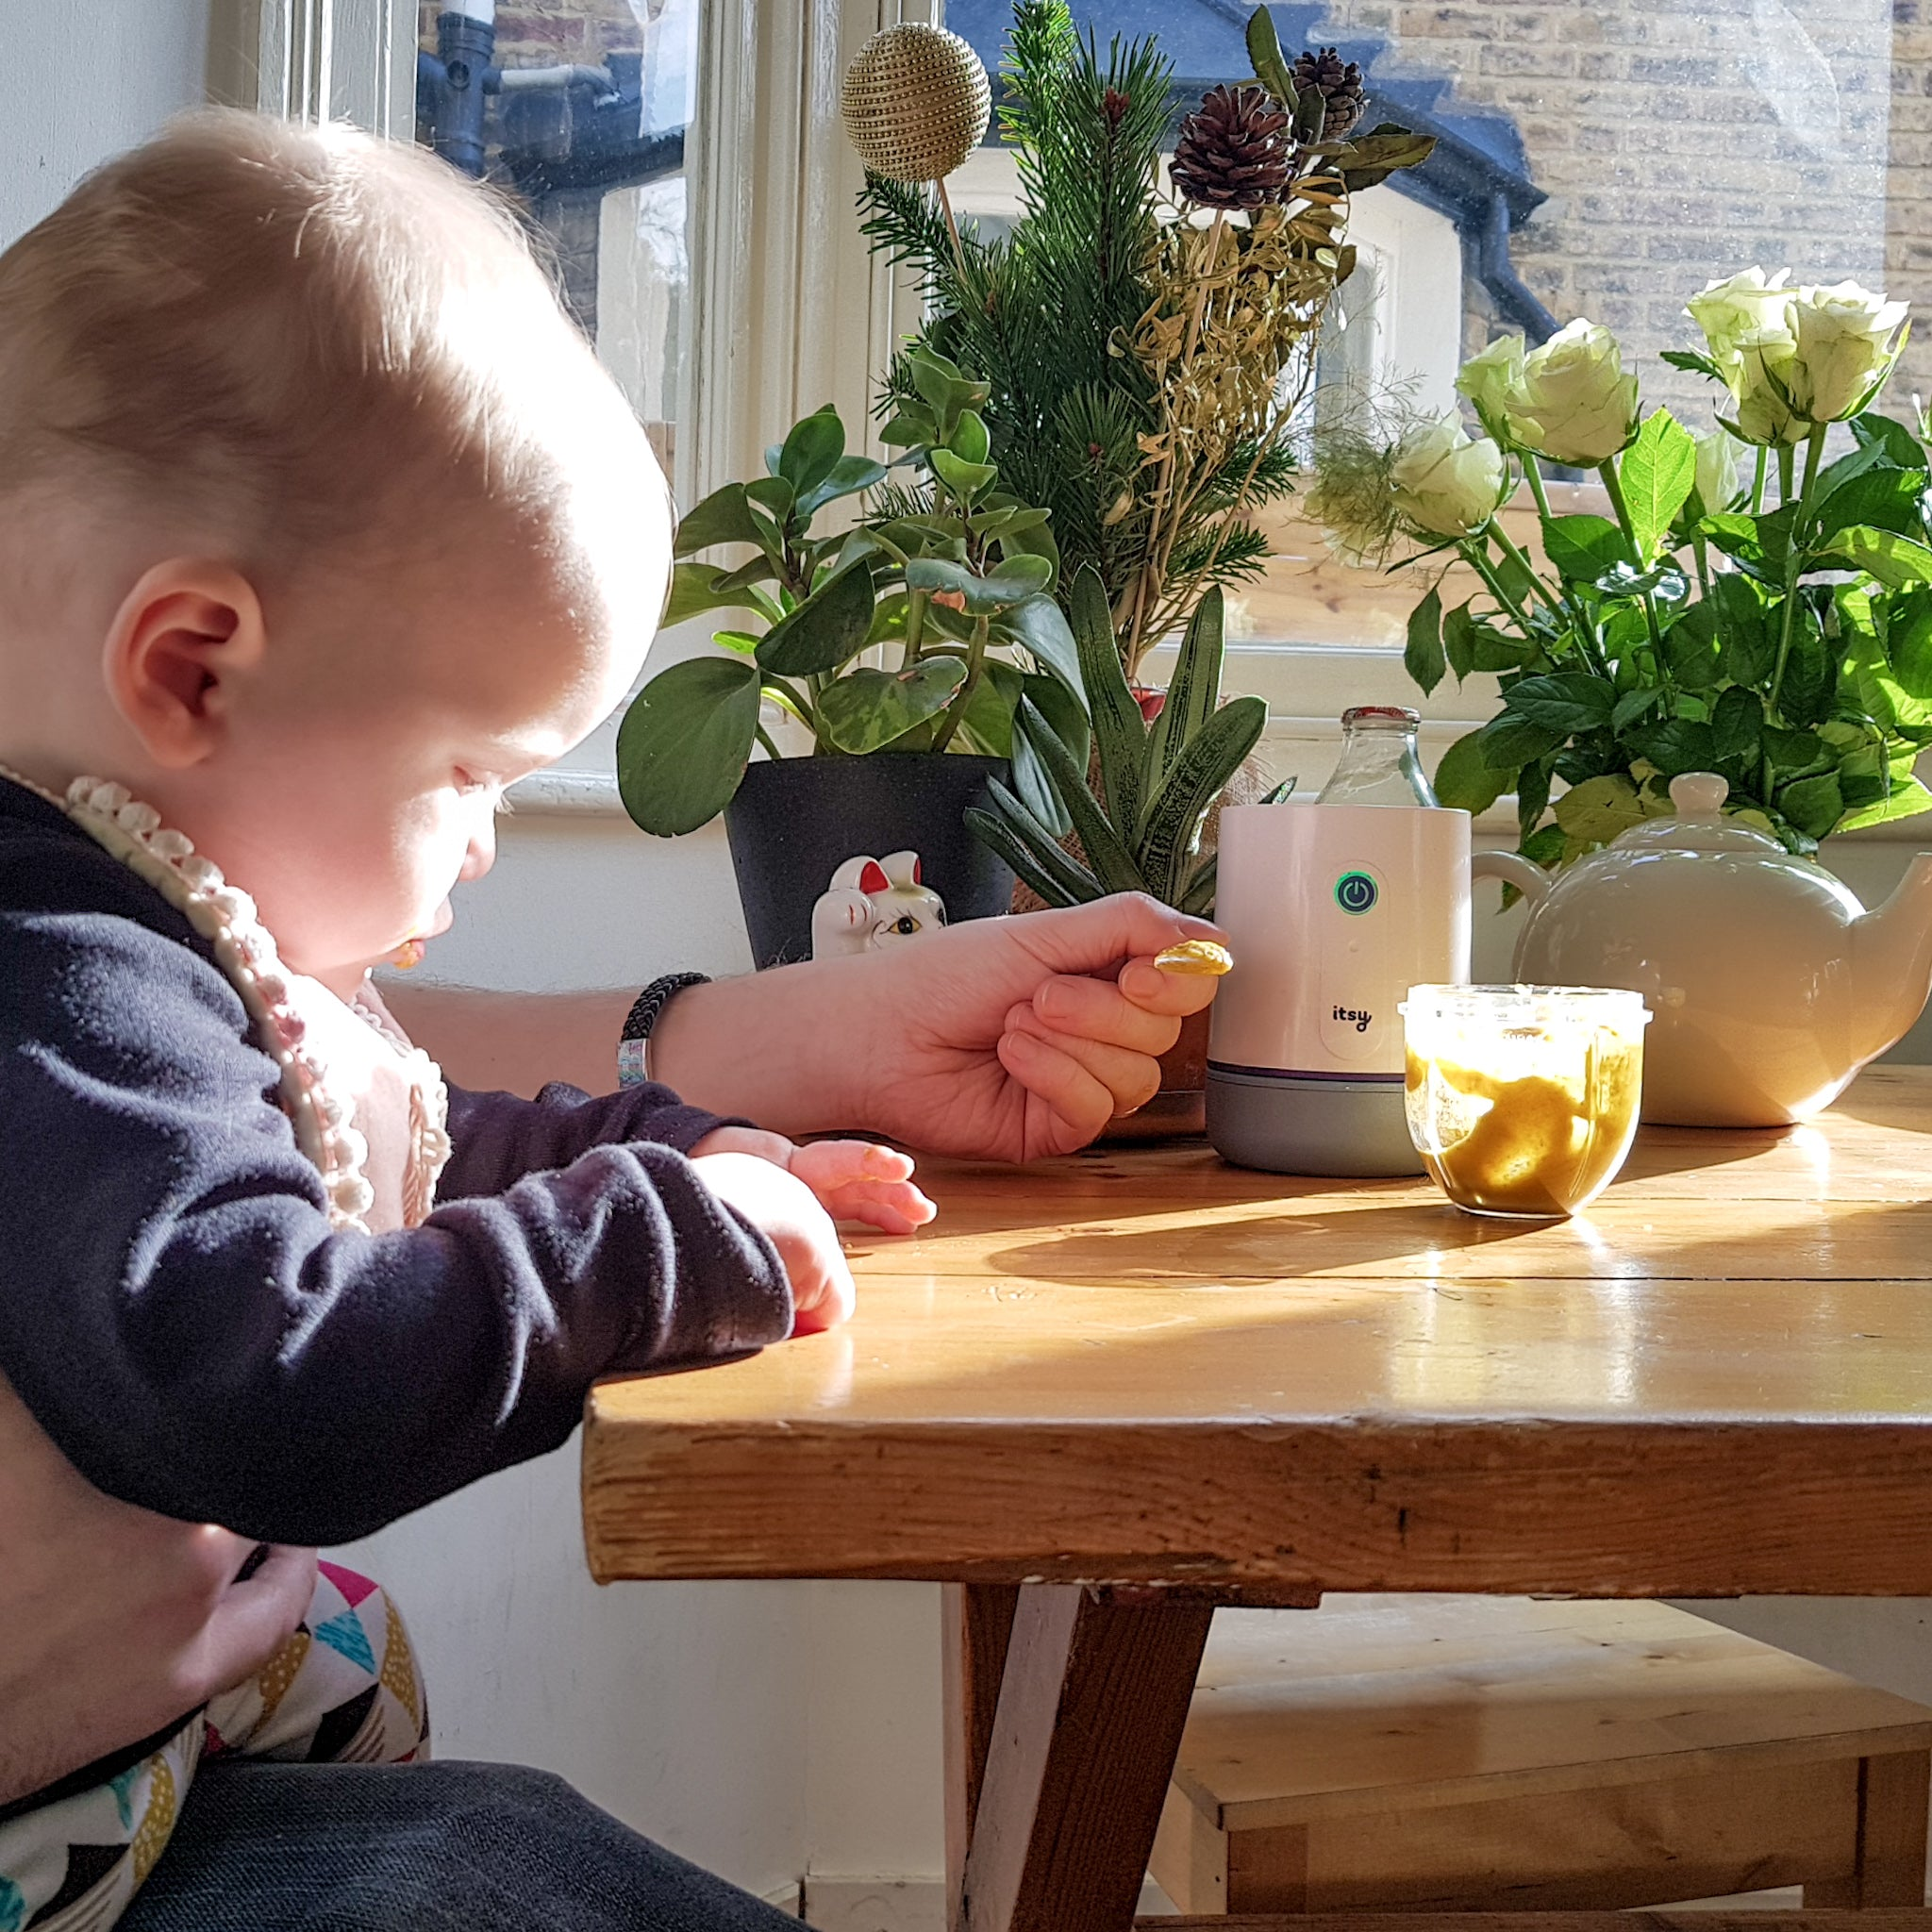 weaning tips and tricks using the Itsy Blitz blender at home, even getting older children involved in your weaning journey